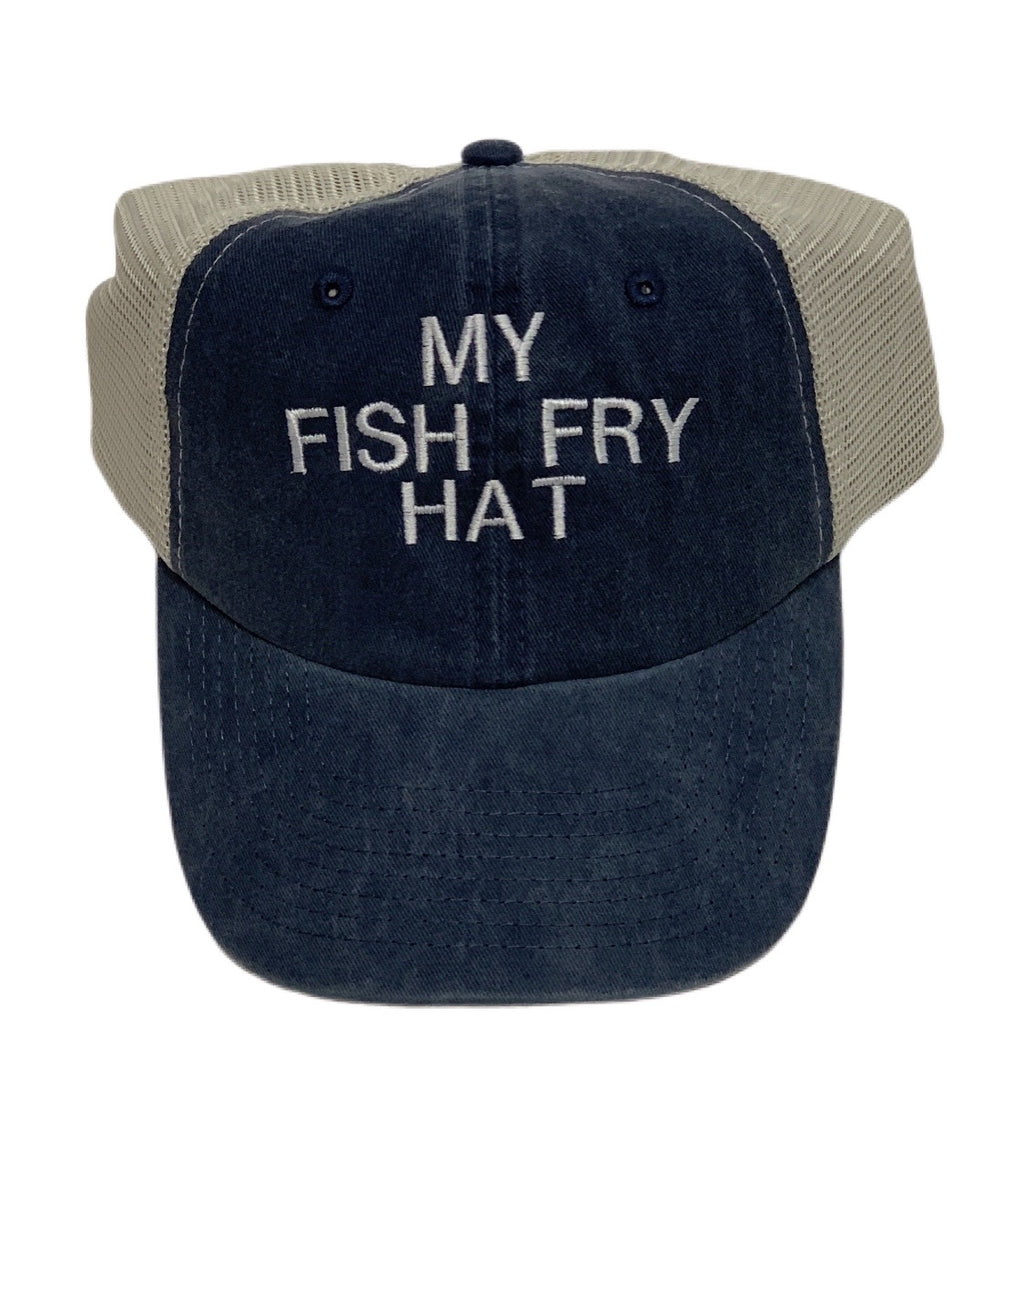 My Fish Fry Hat